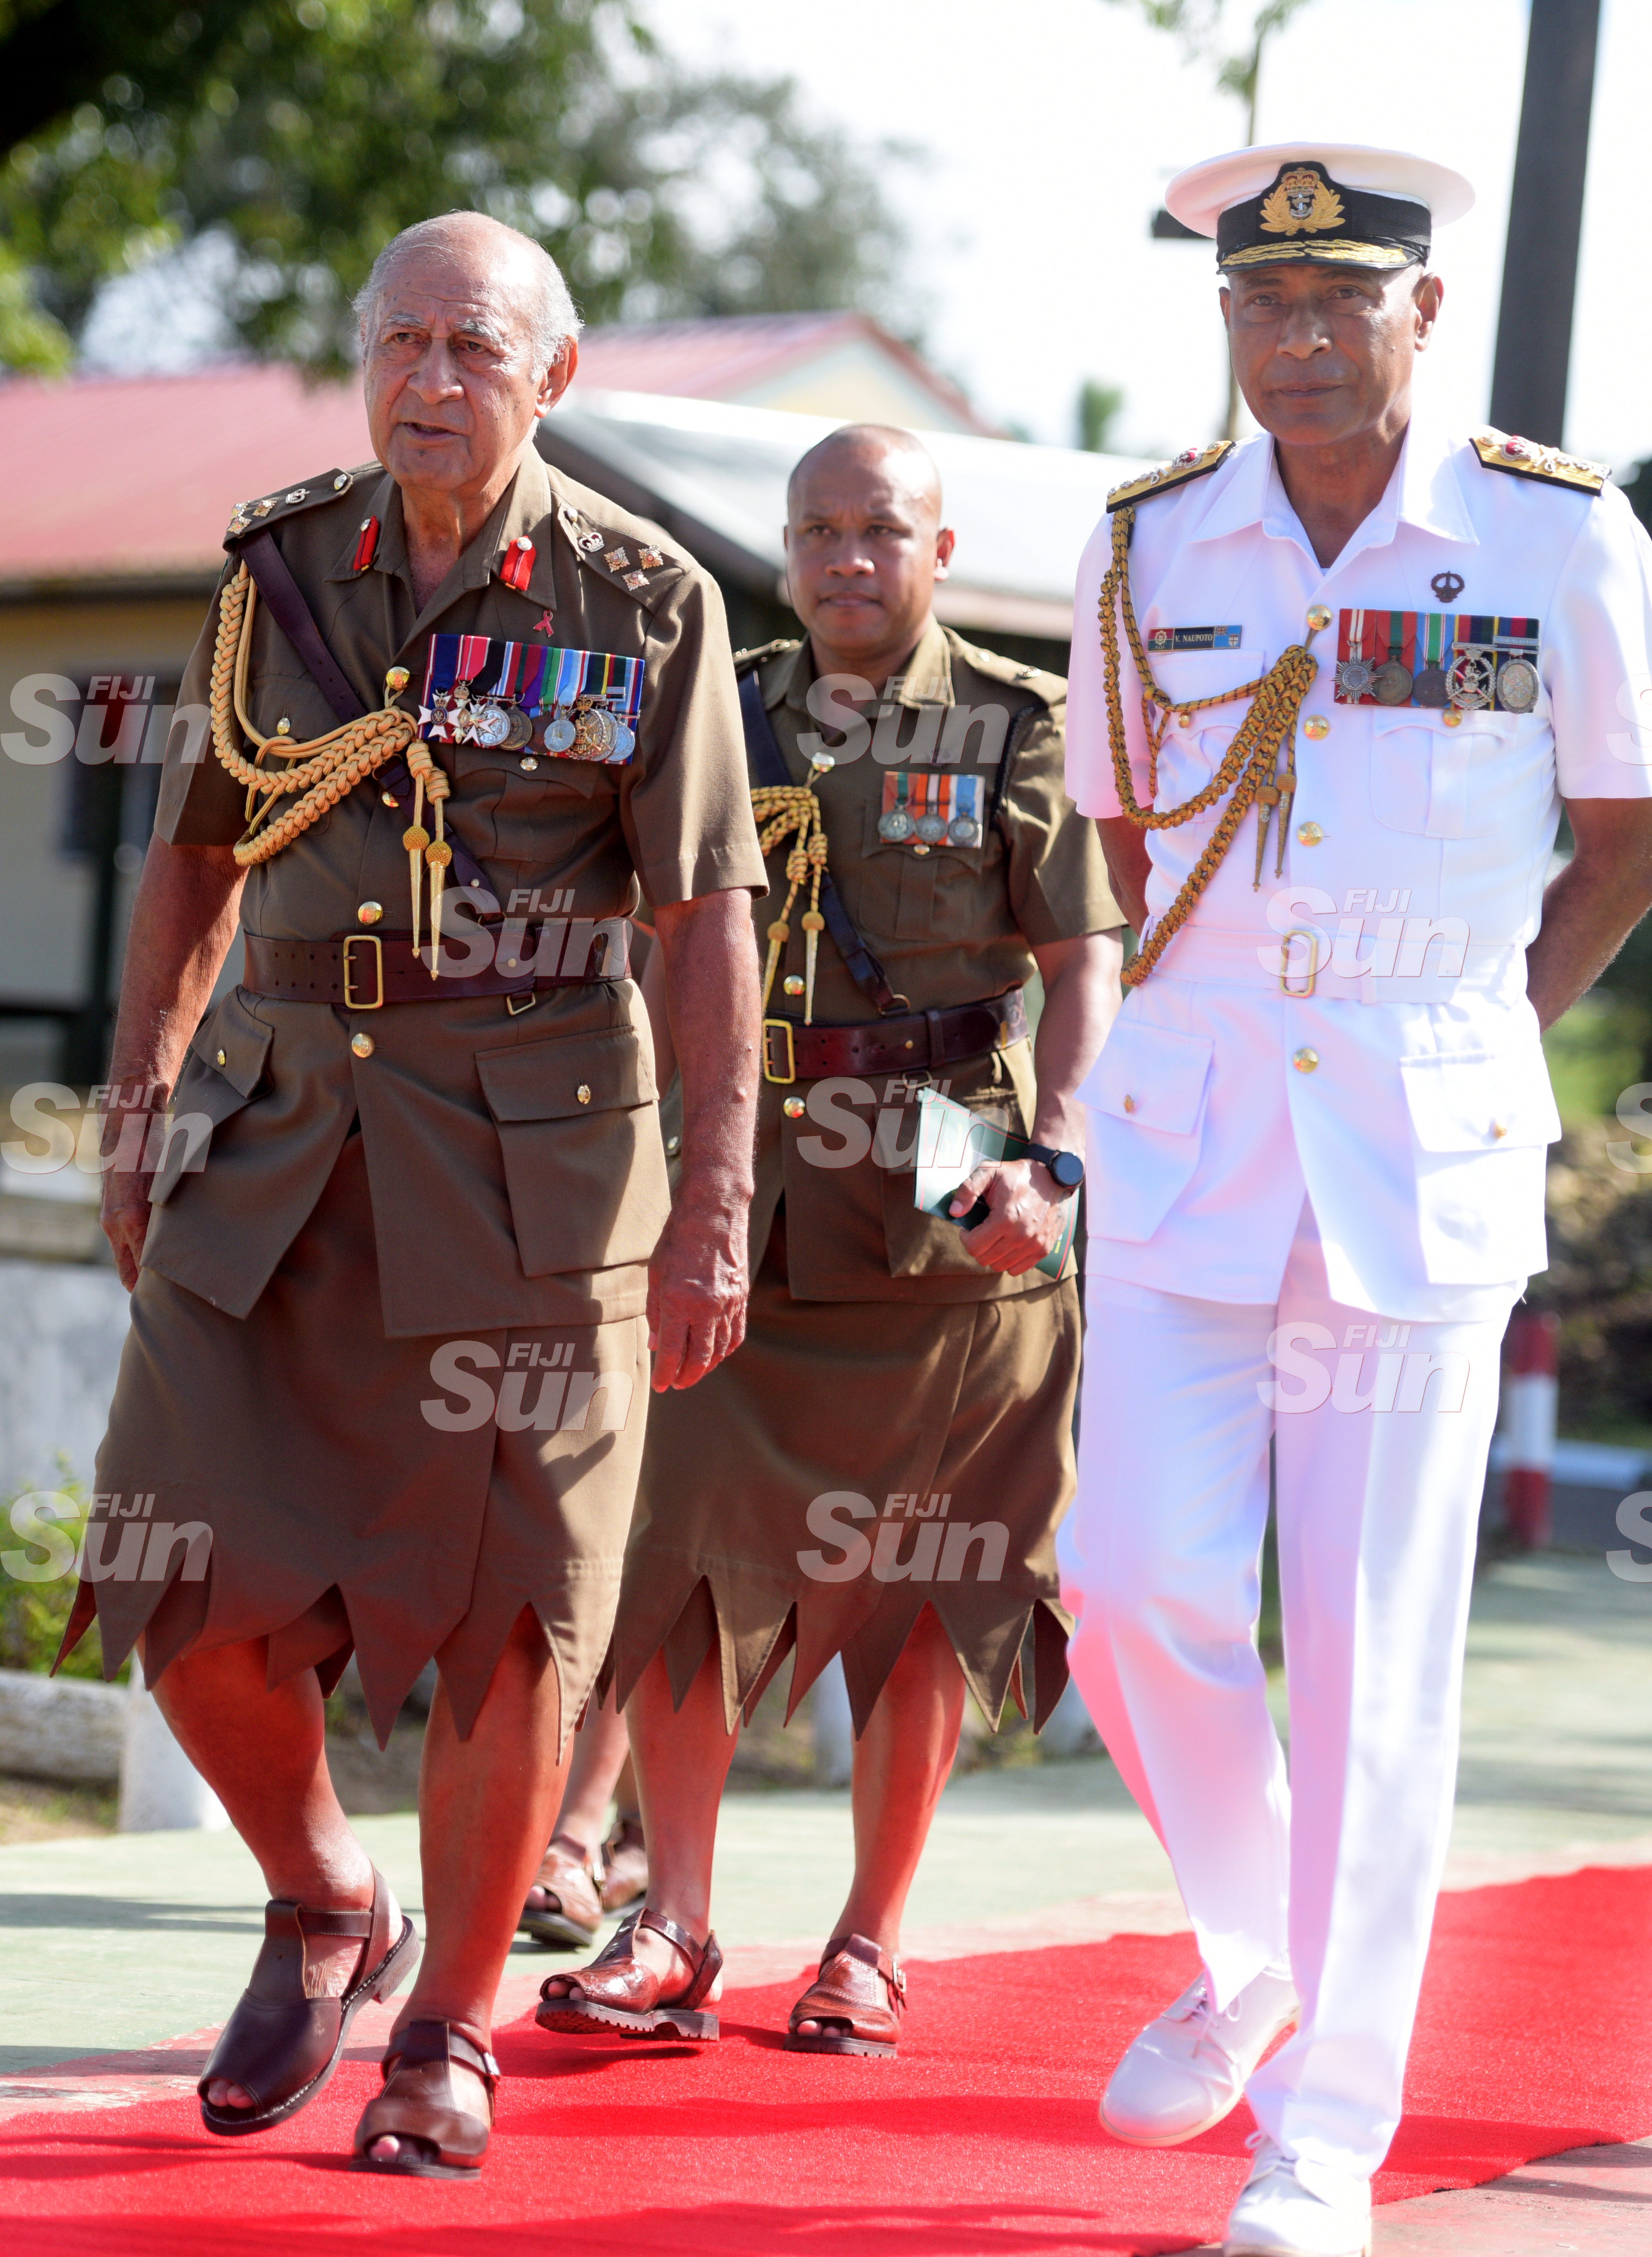 Brigadier General (Retired) Ratu Epeli Nailatikau and RFMF Commander Rear Admiral Viliame Naupoto following the inauguration of the Colonel of the Regiment parade on July 21, 2020. Photo: Ronald Kumar.